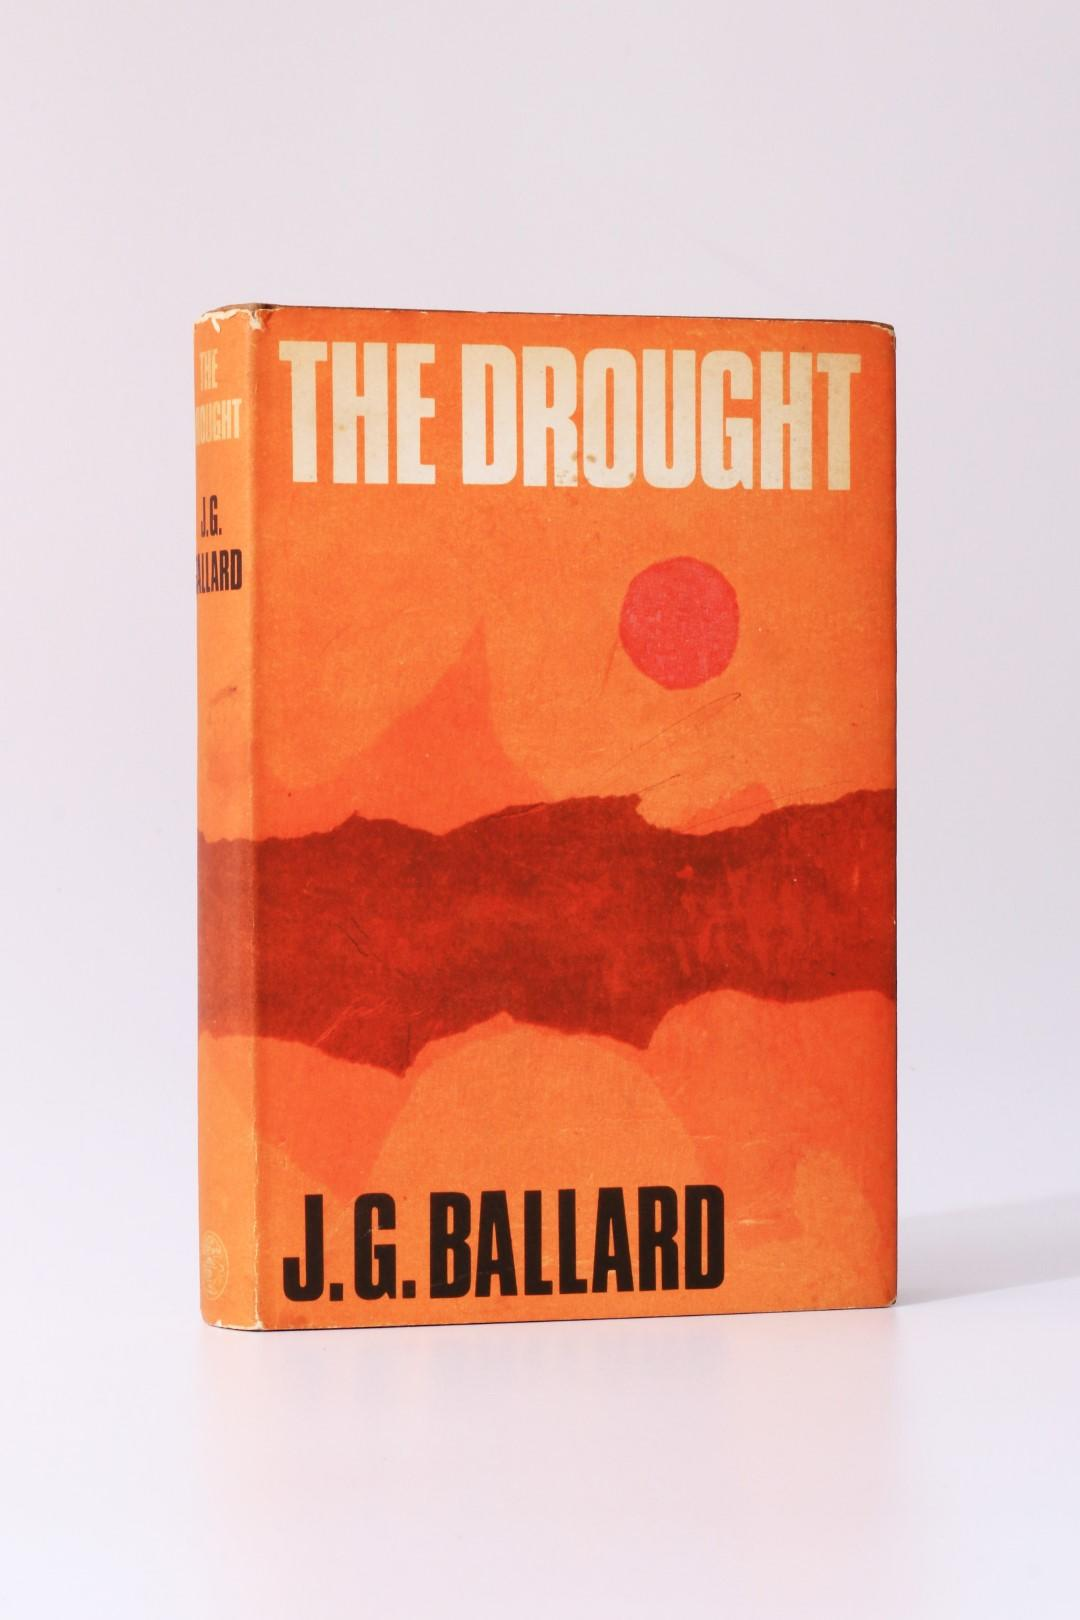 J.G. Ballard - The Drought - Jonathan Cape, 1964, First Edition.